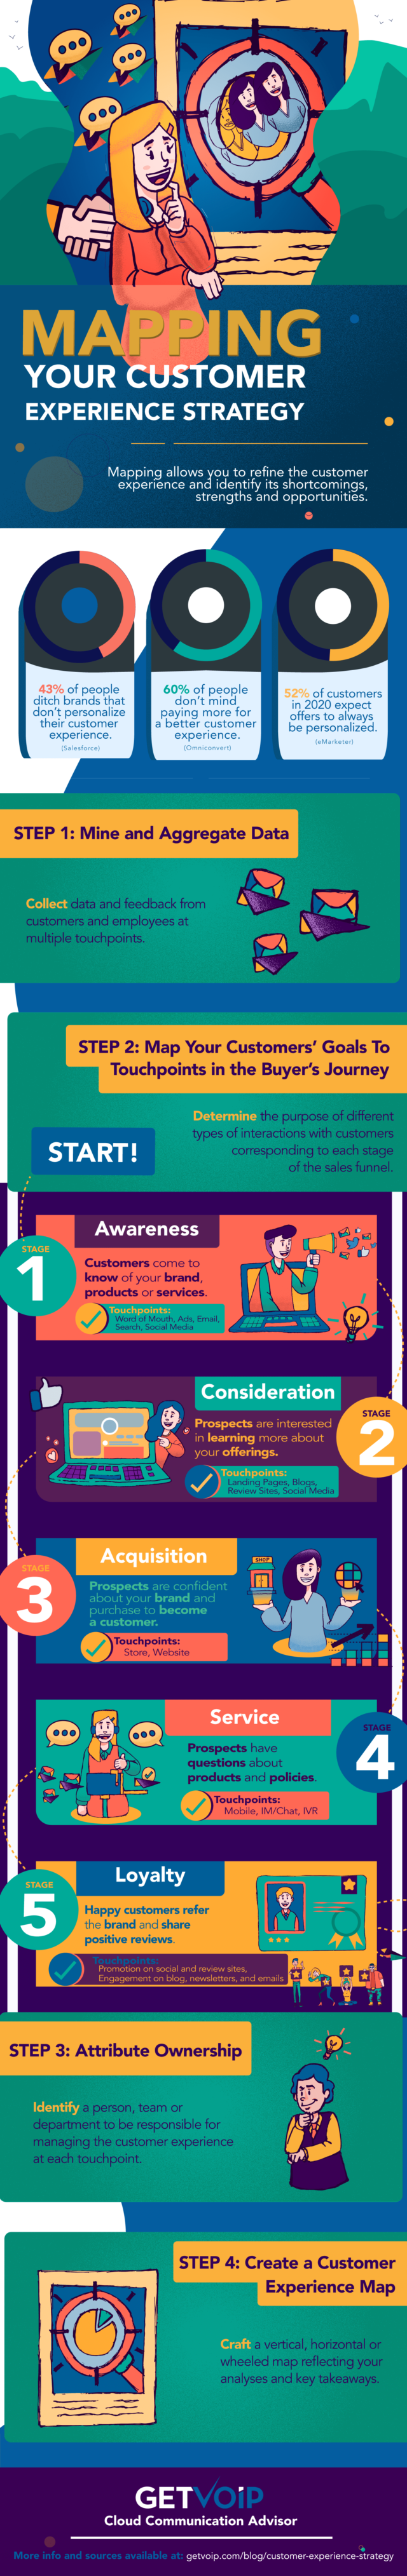 Mapping Your Customer Experience Strategy Infographic